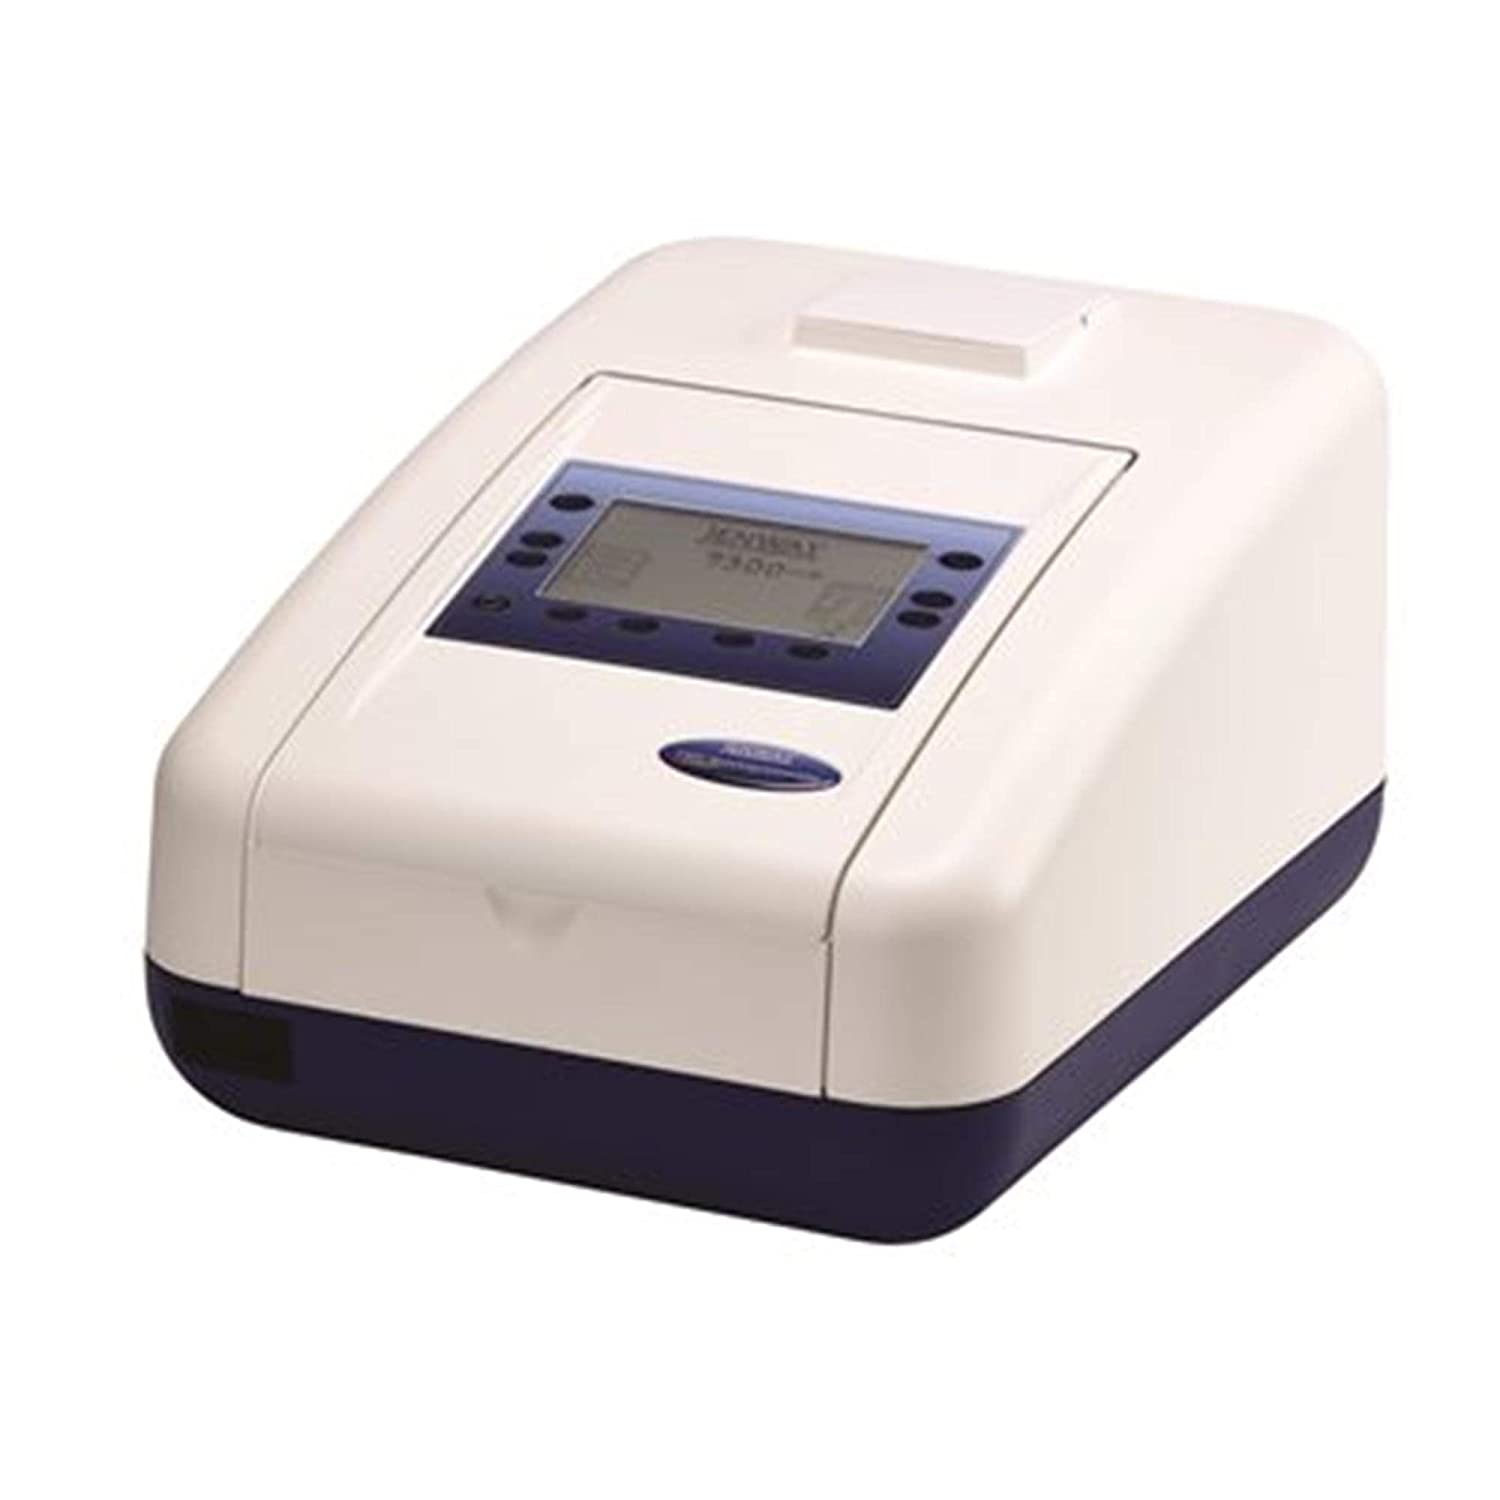 Spring new work one after another TECHNE INCORPORATED 731001 Series 73 Spectrophotometer Advanced Max 48% OFF